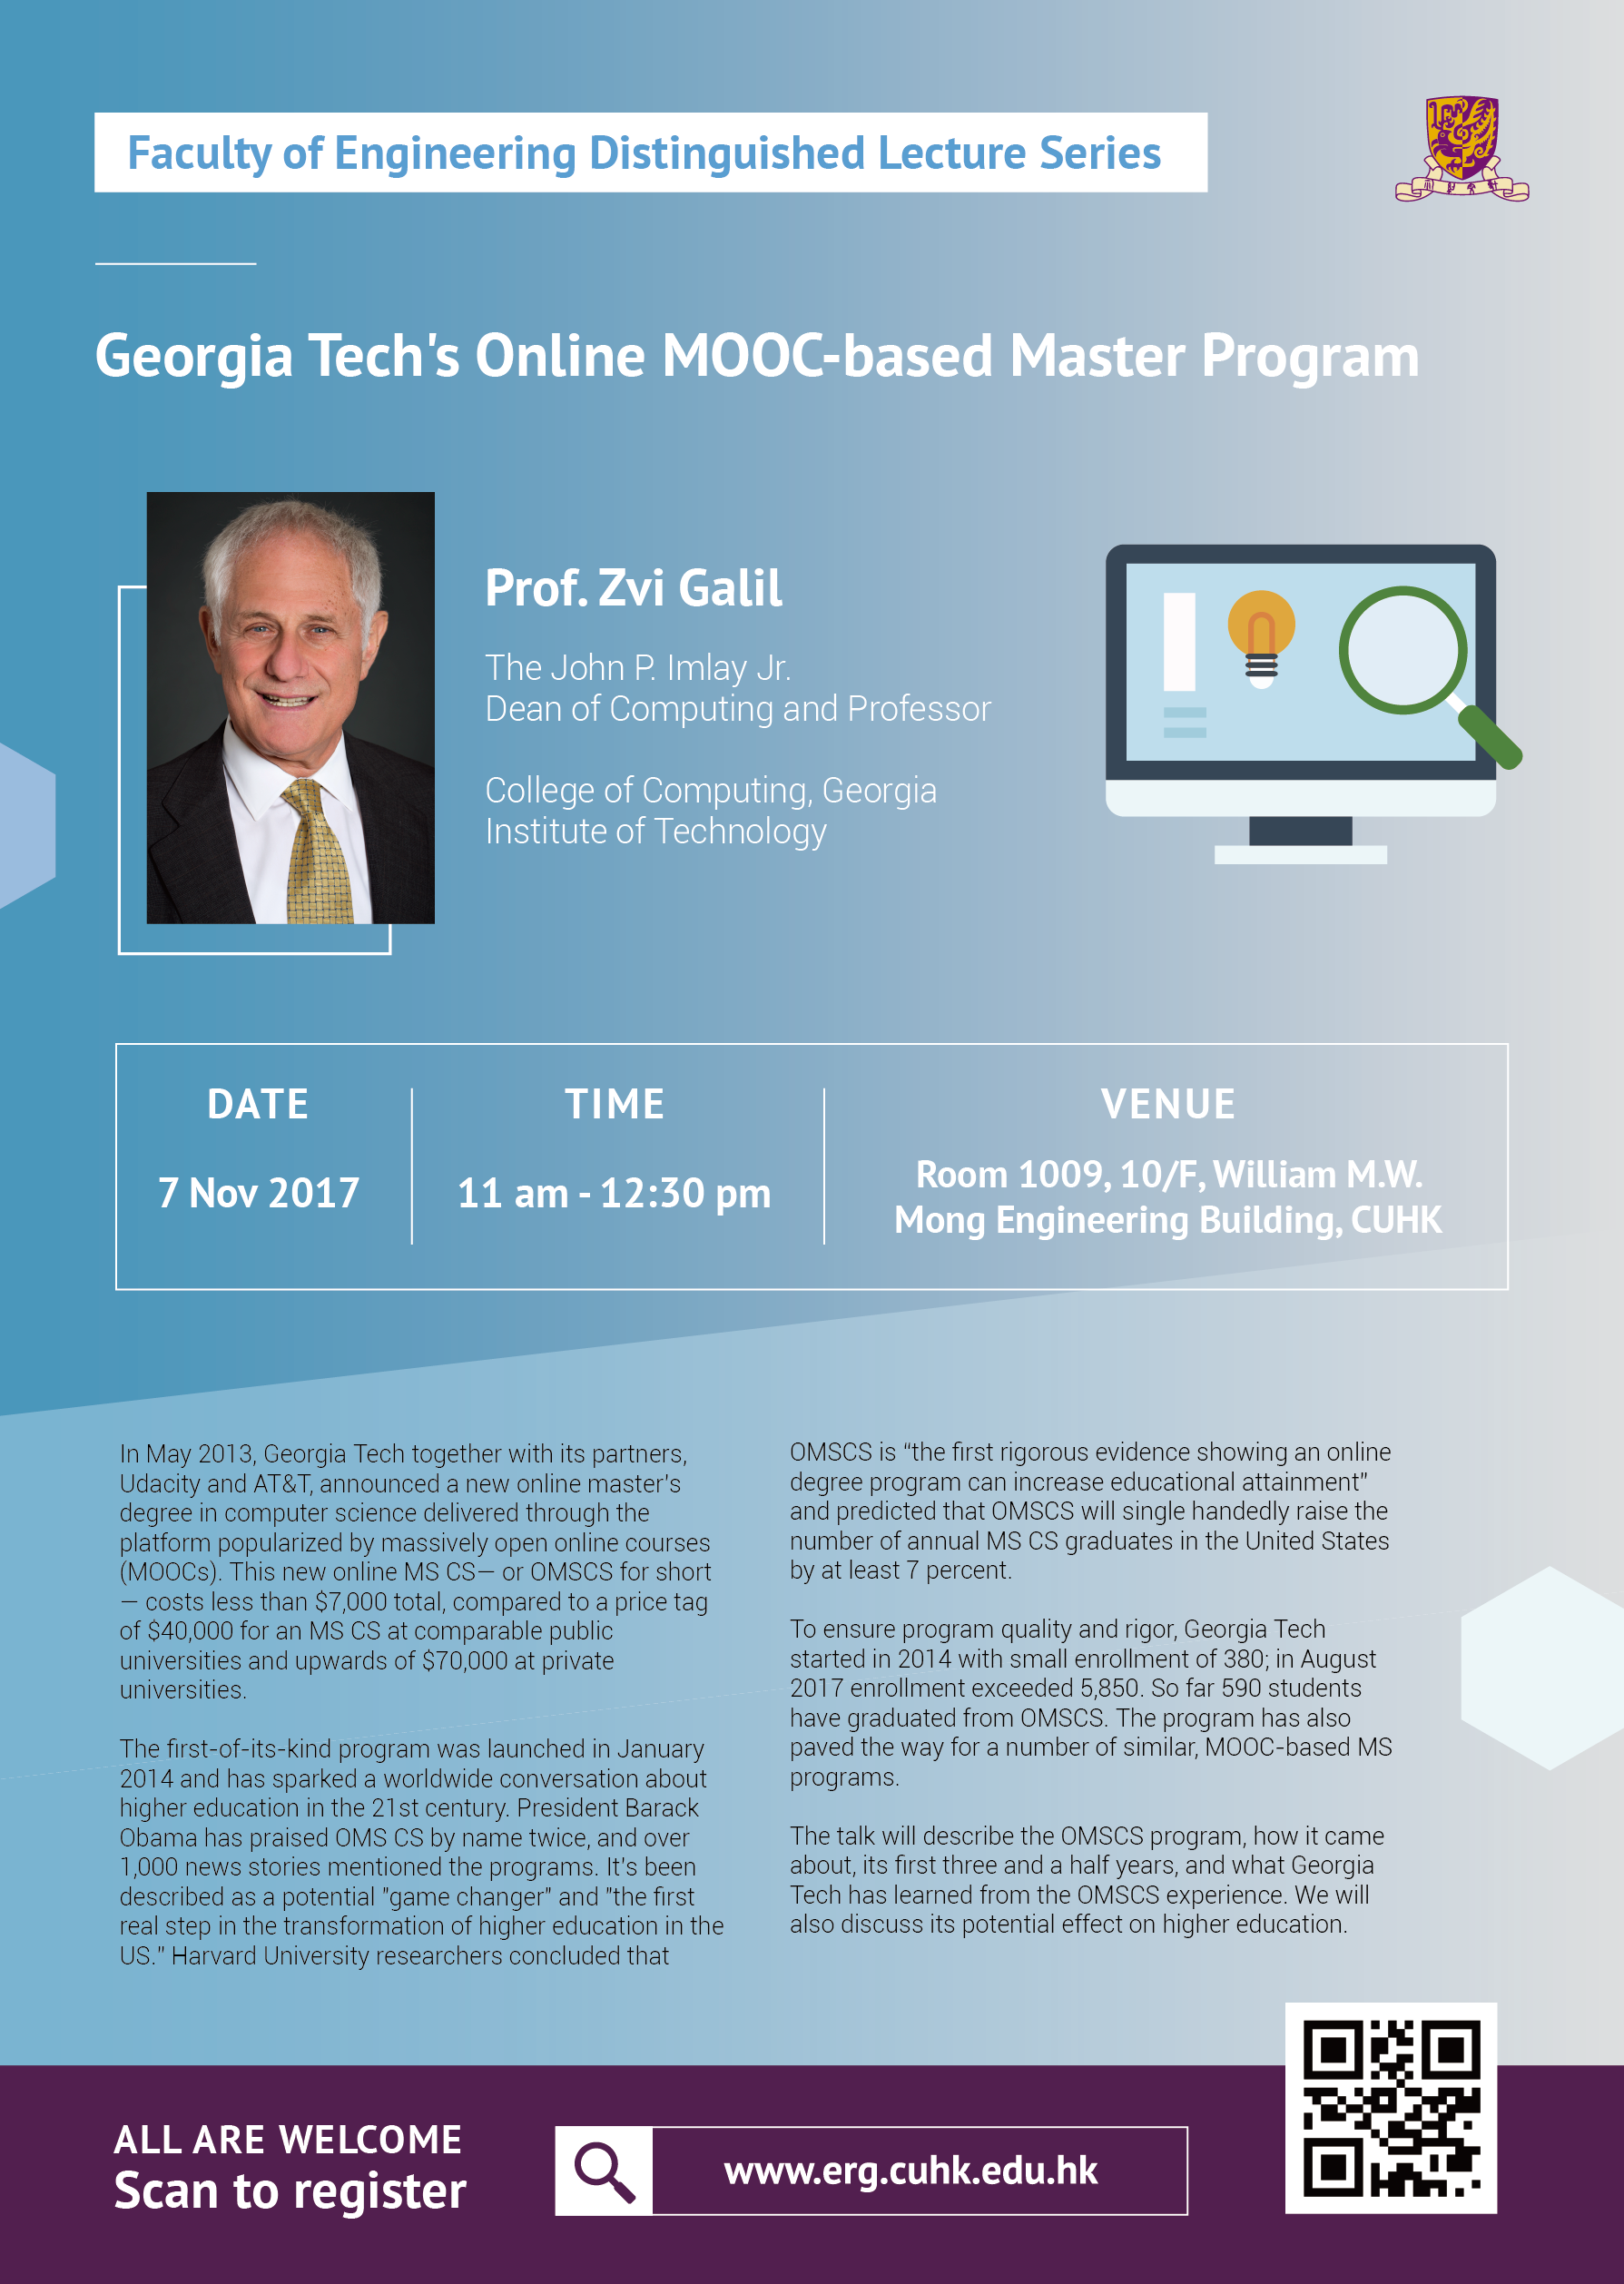 Faculty Distinguished Lecture: Georgia Tech's Online MOOC